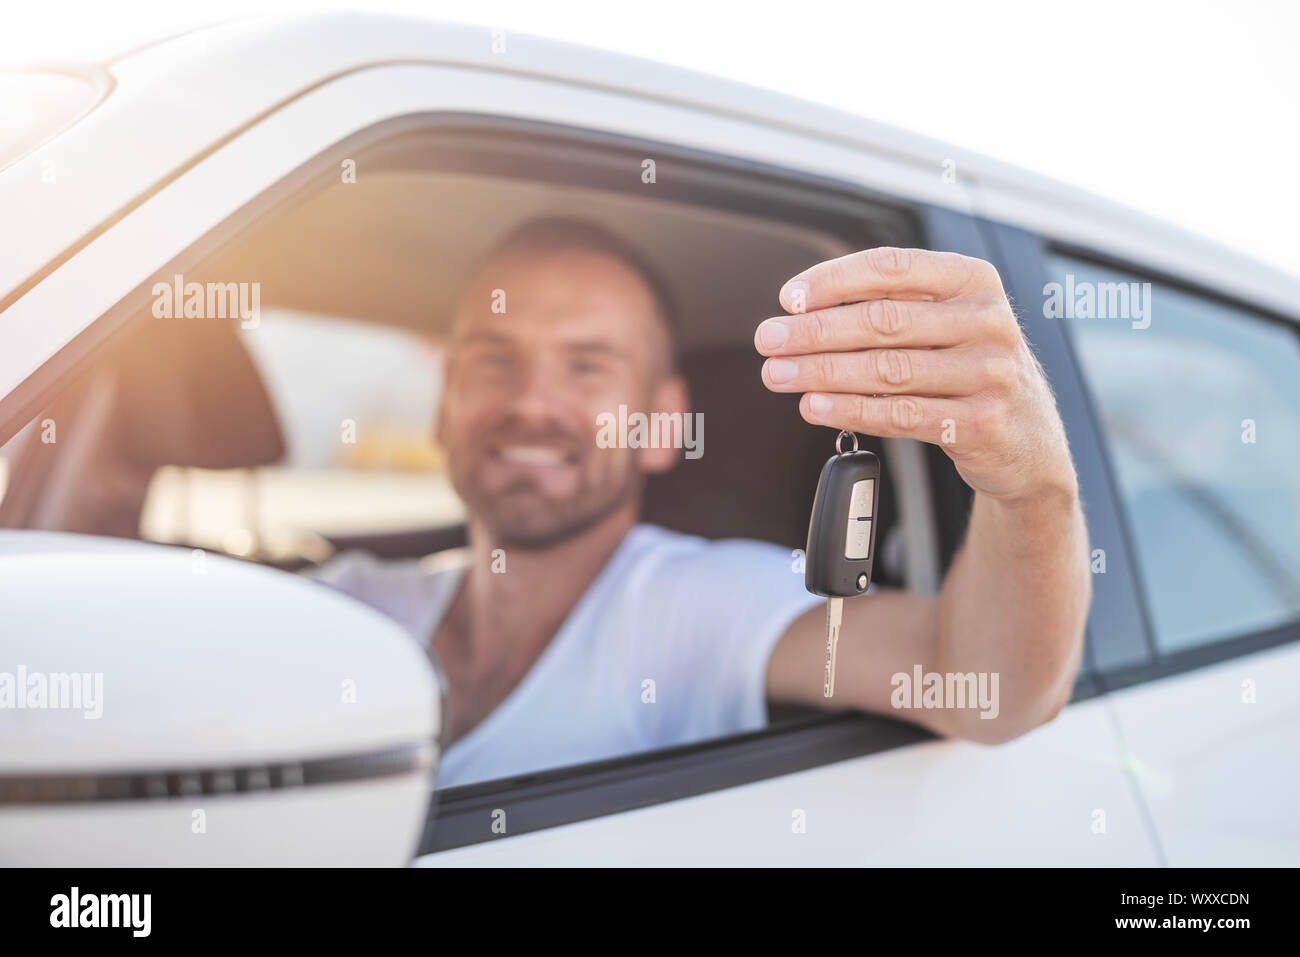 A man in a white car shows a key. Stock Photo